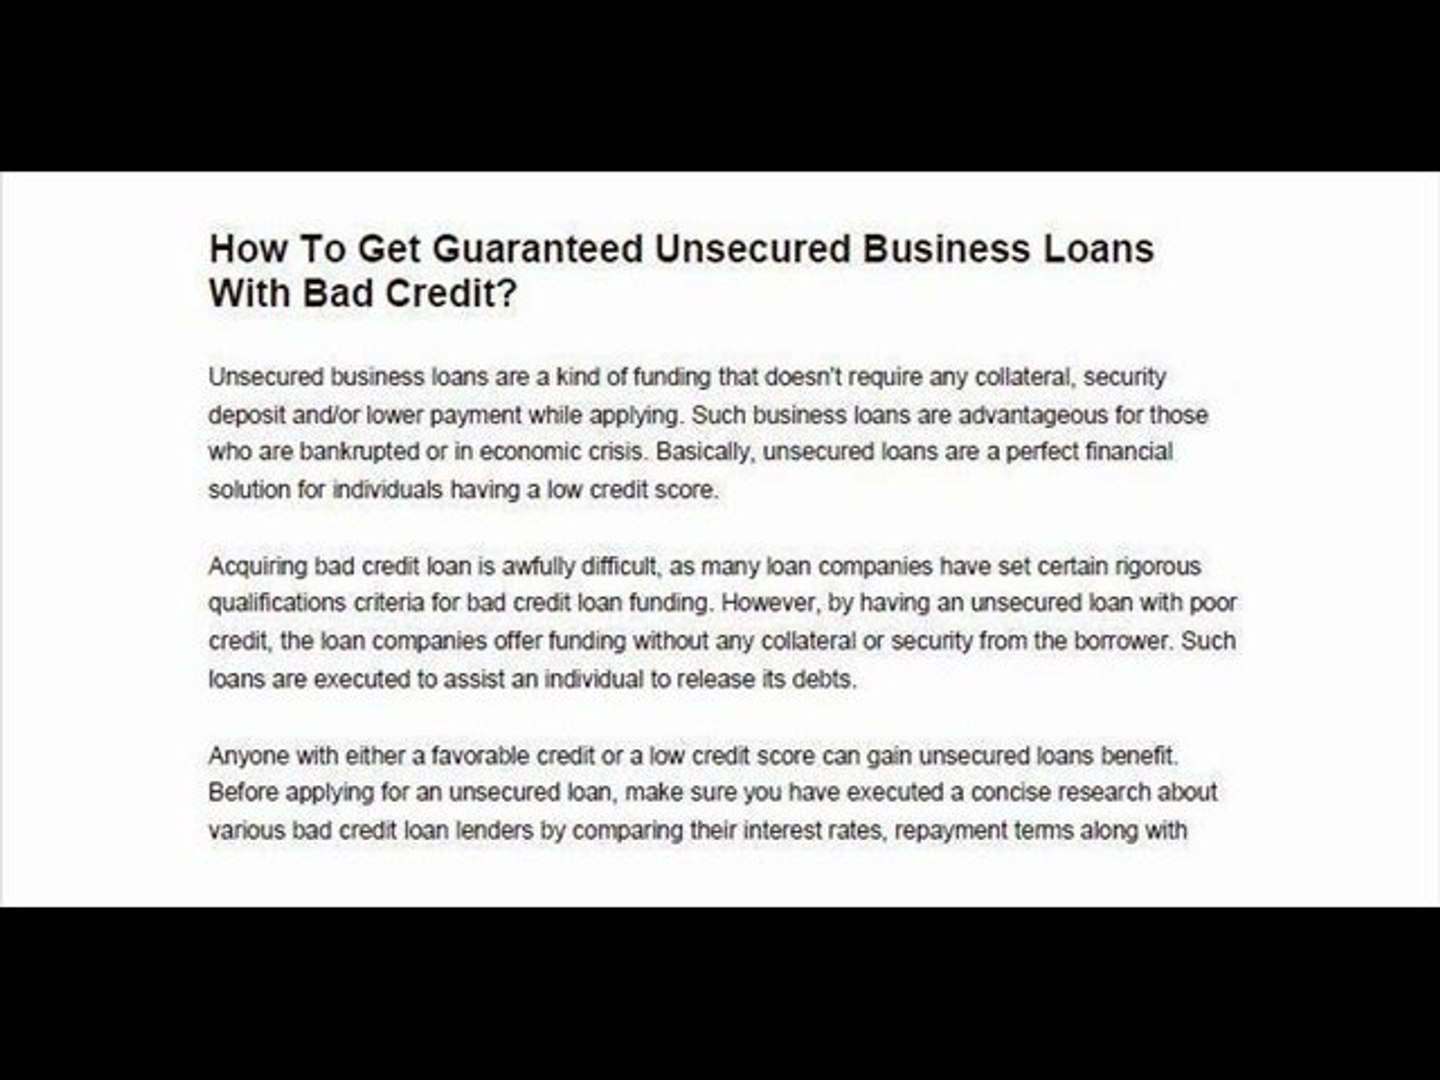 Unsecured Bad Credit Loans >> How To Get Guaranteed Unsecured Business Loans With Bad Credit